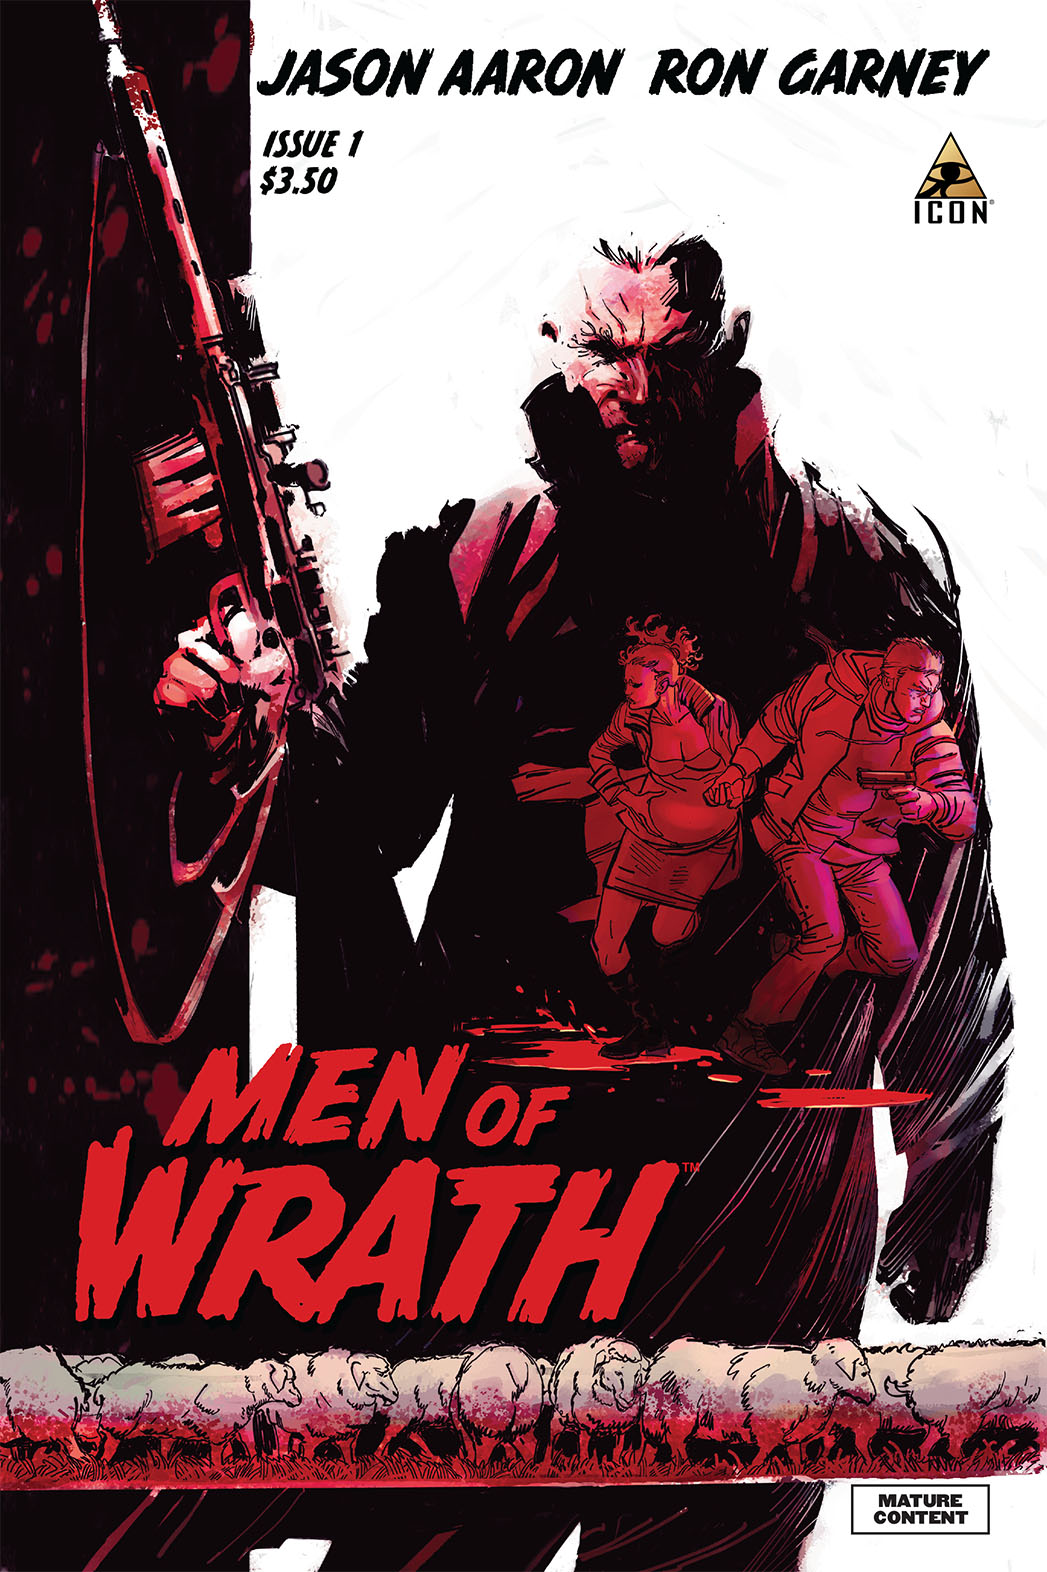 Men of Wrath Cover - P 2014